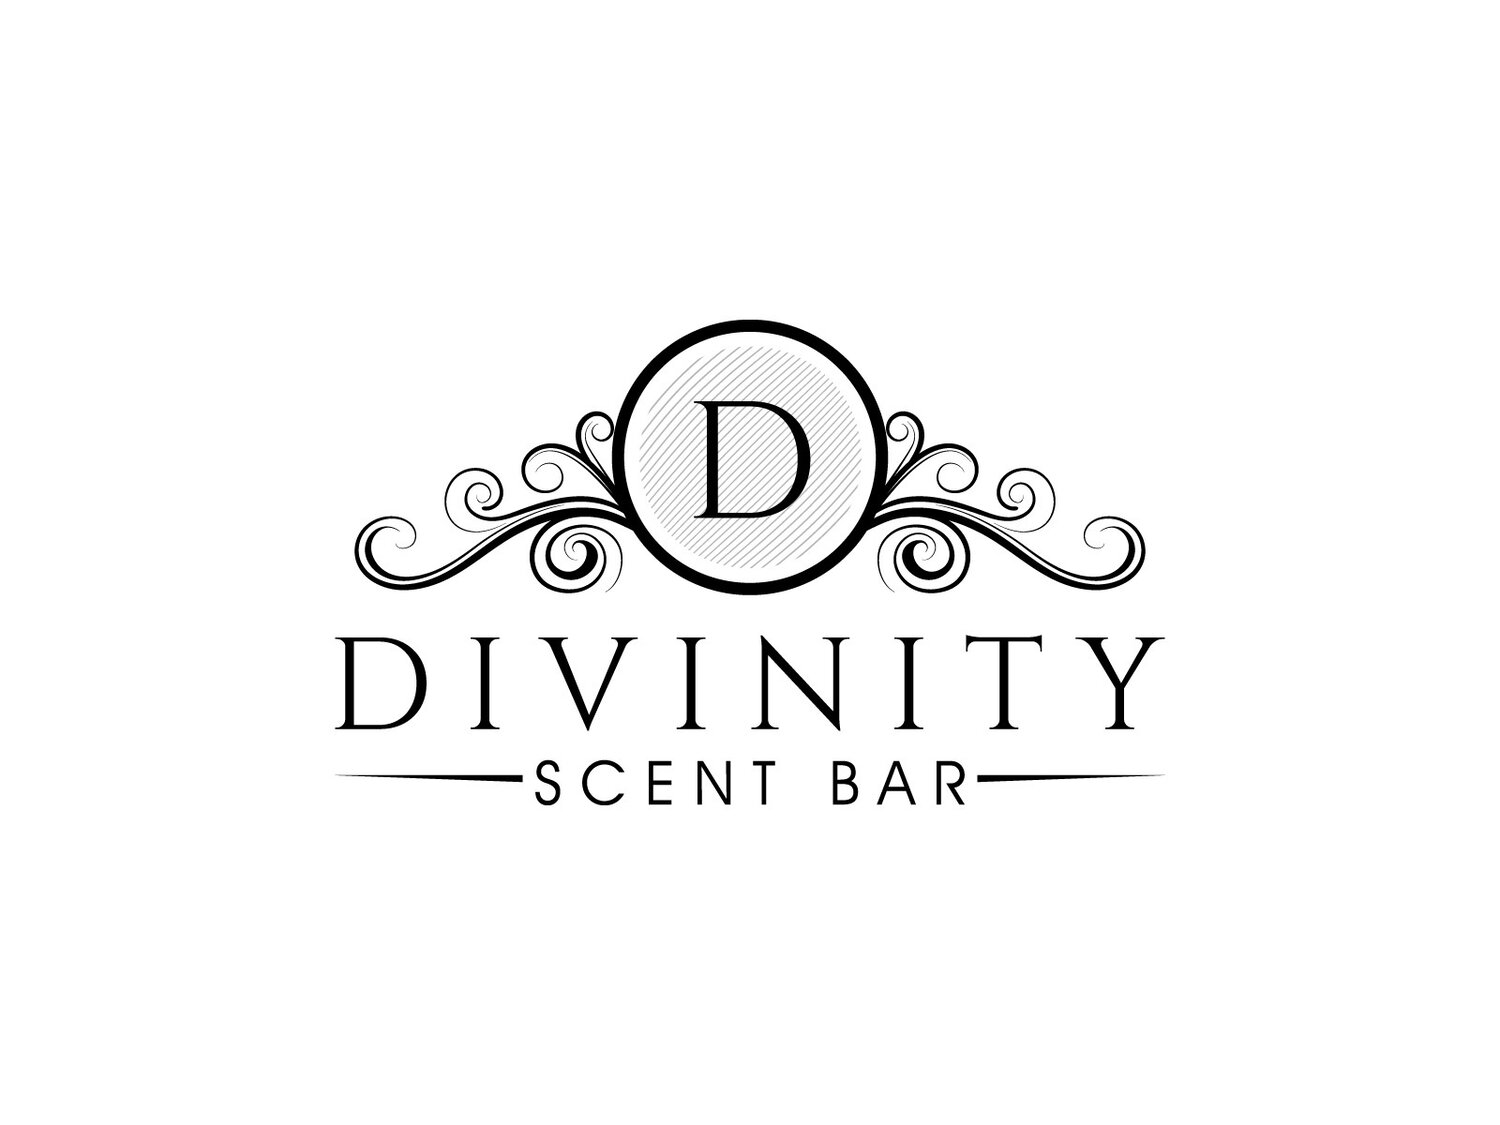 DIVINITY SCENT BAR